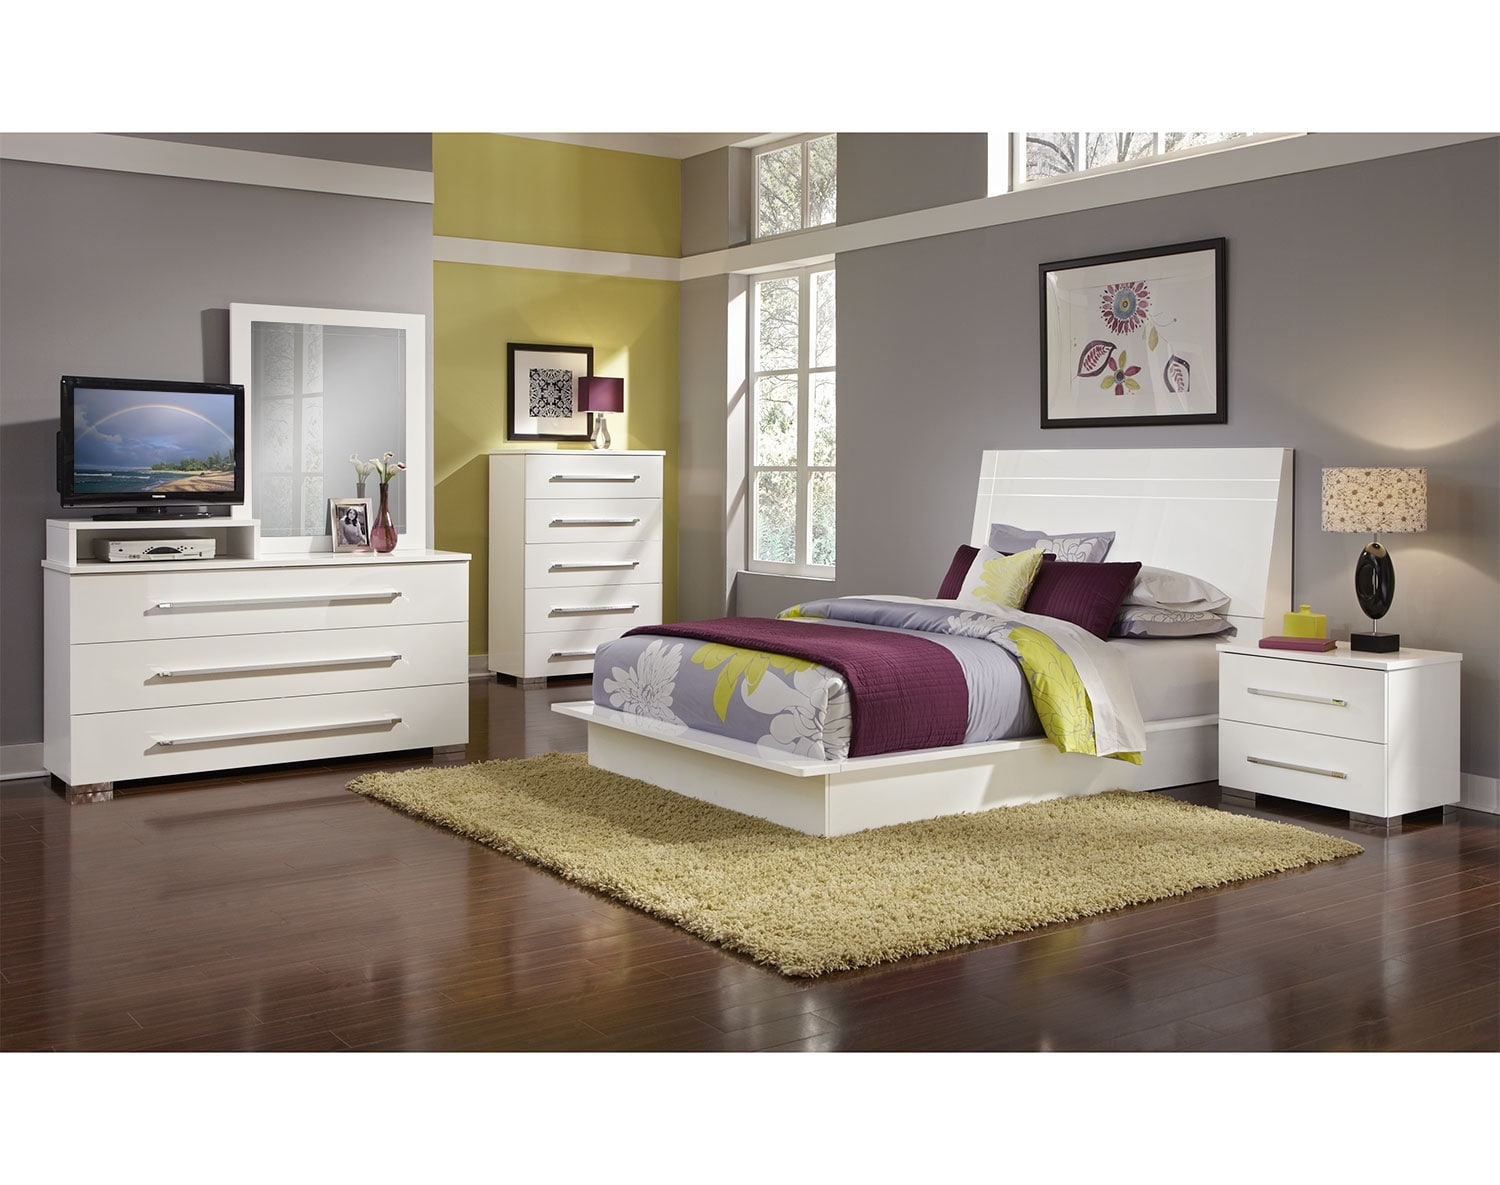 Bedroom Furniture - The Prima II White Collection - Queen Bed